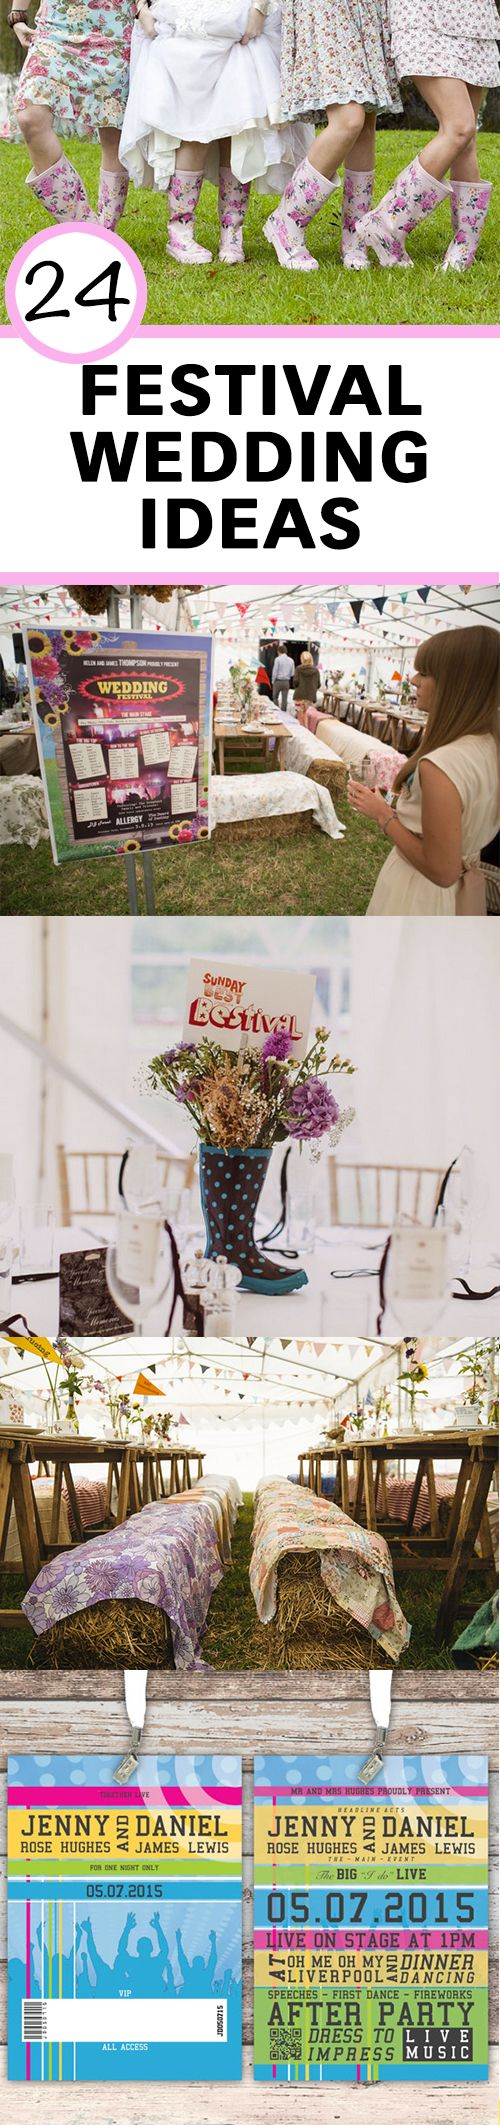 24 ideas for an awesome festival-themed wedding!                                                                                                                                                     More